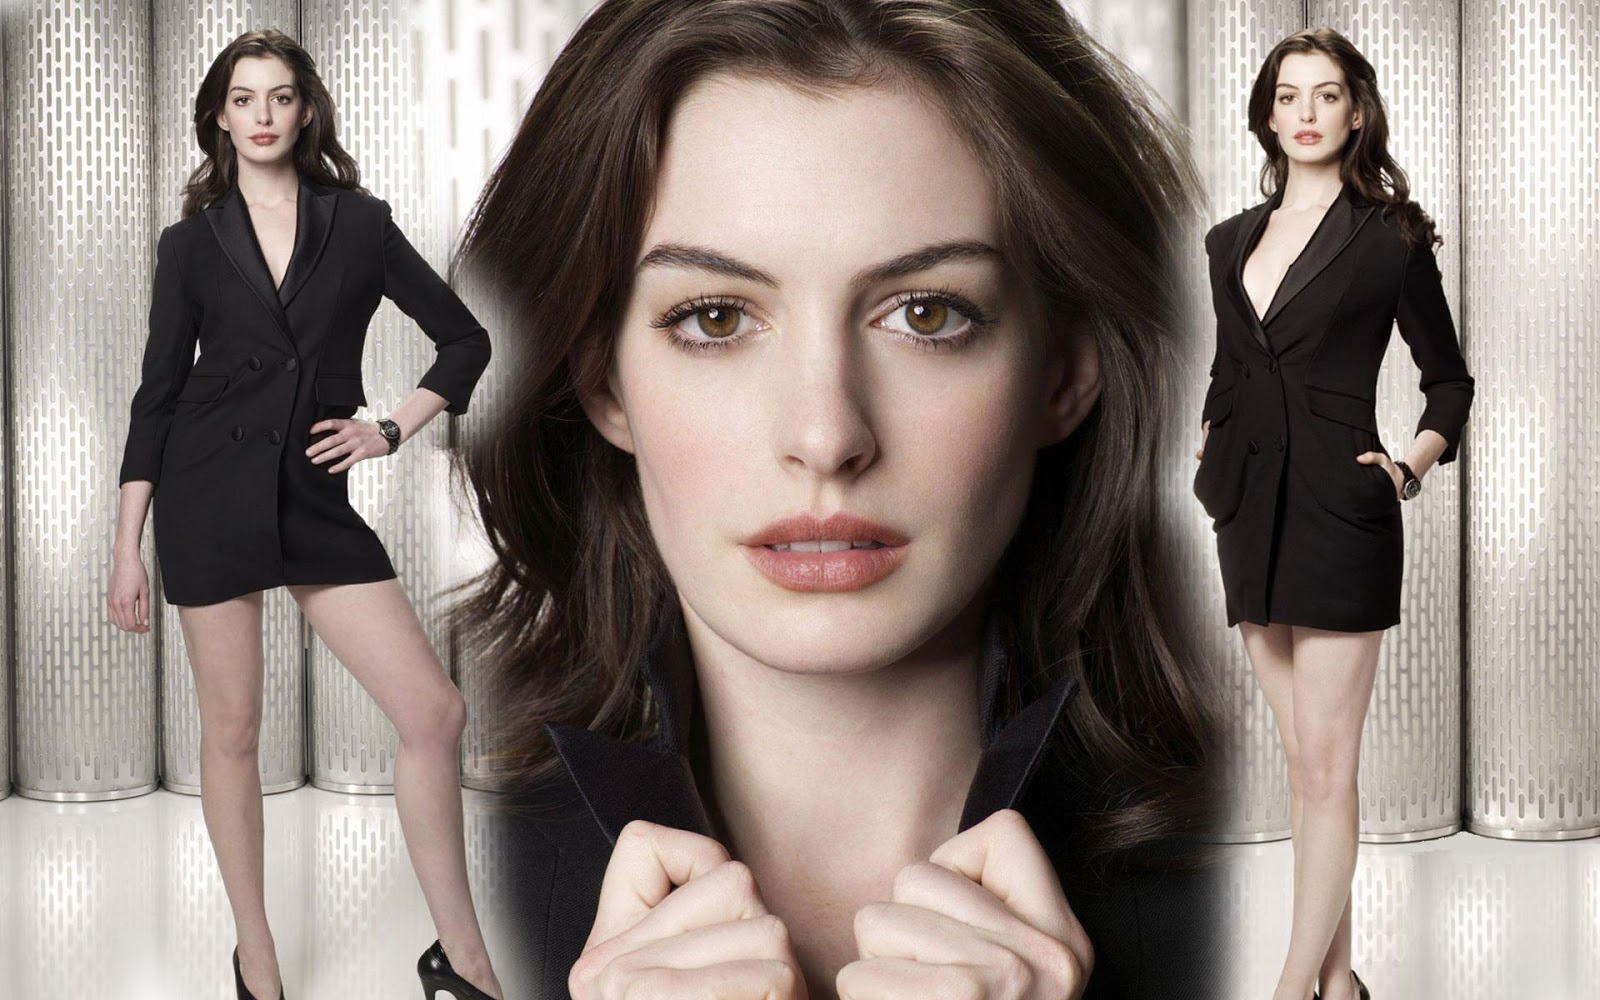 Anne Hathaway Biography - Biography